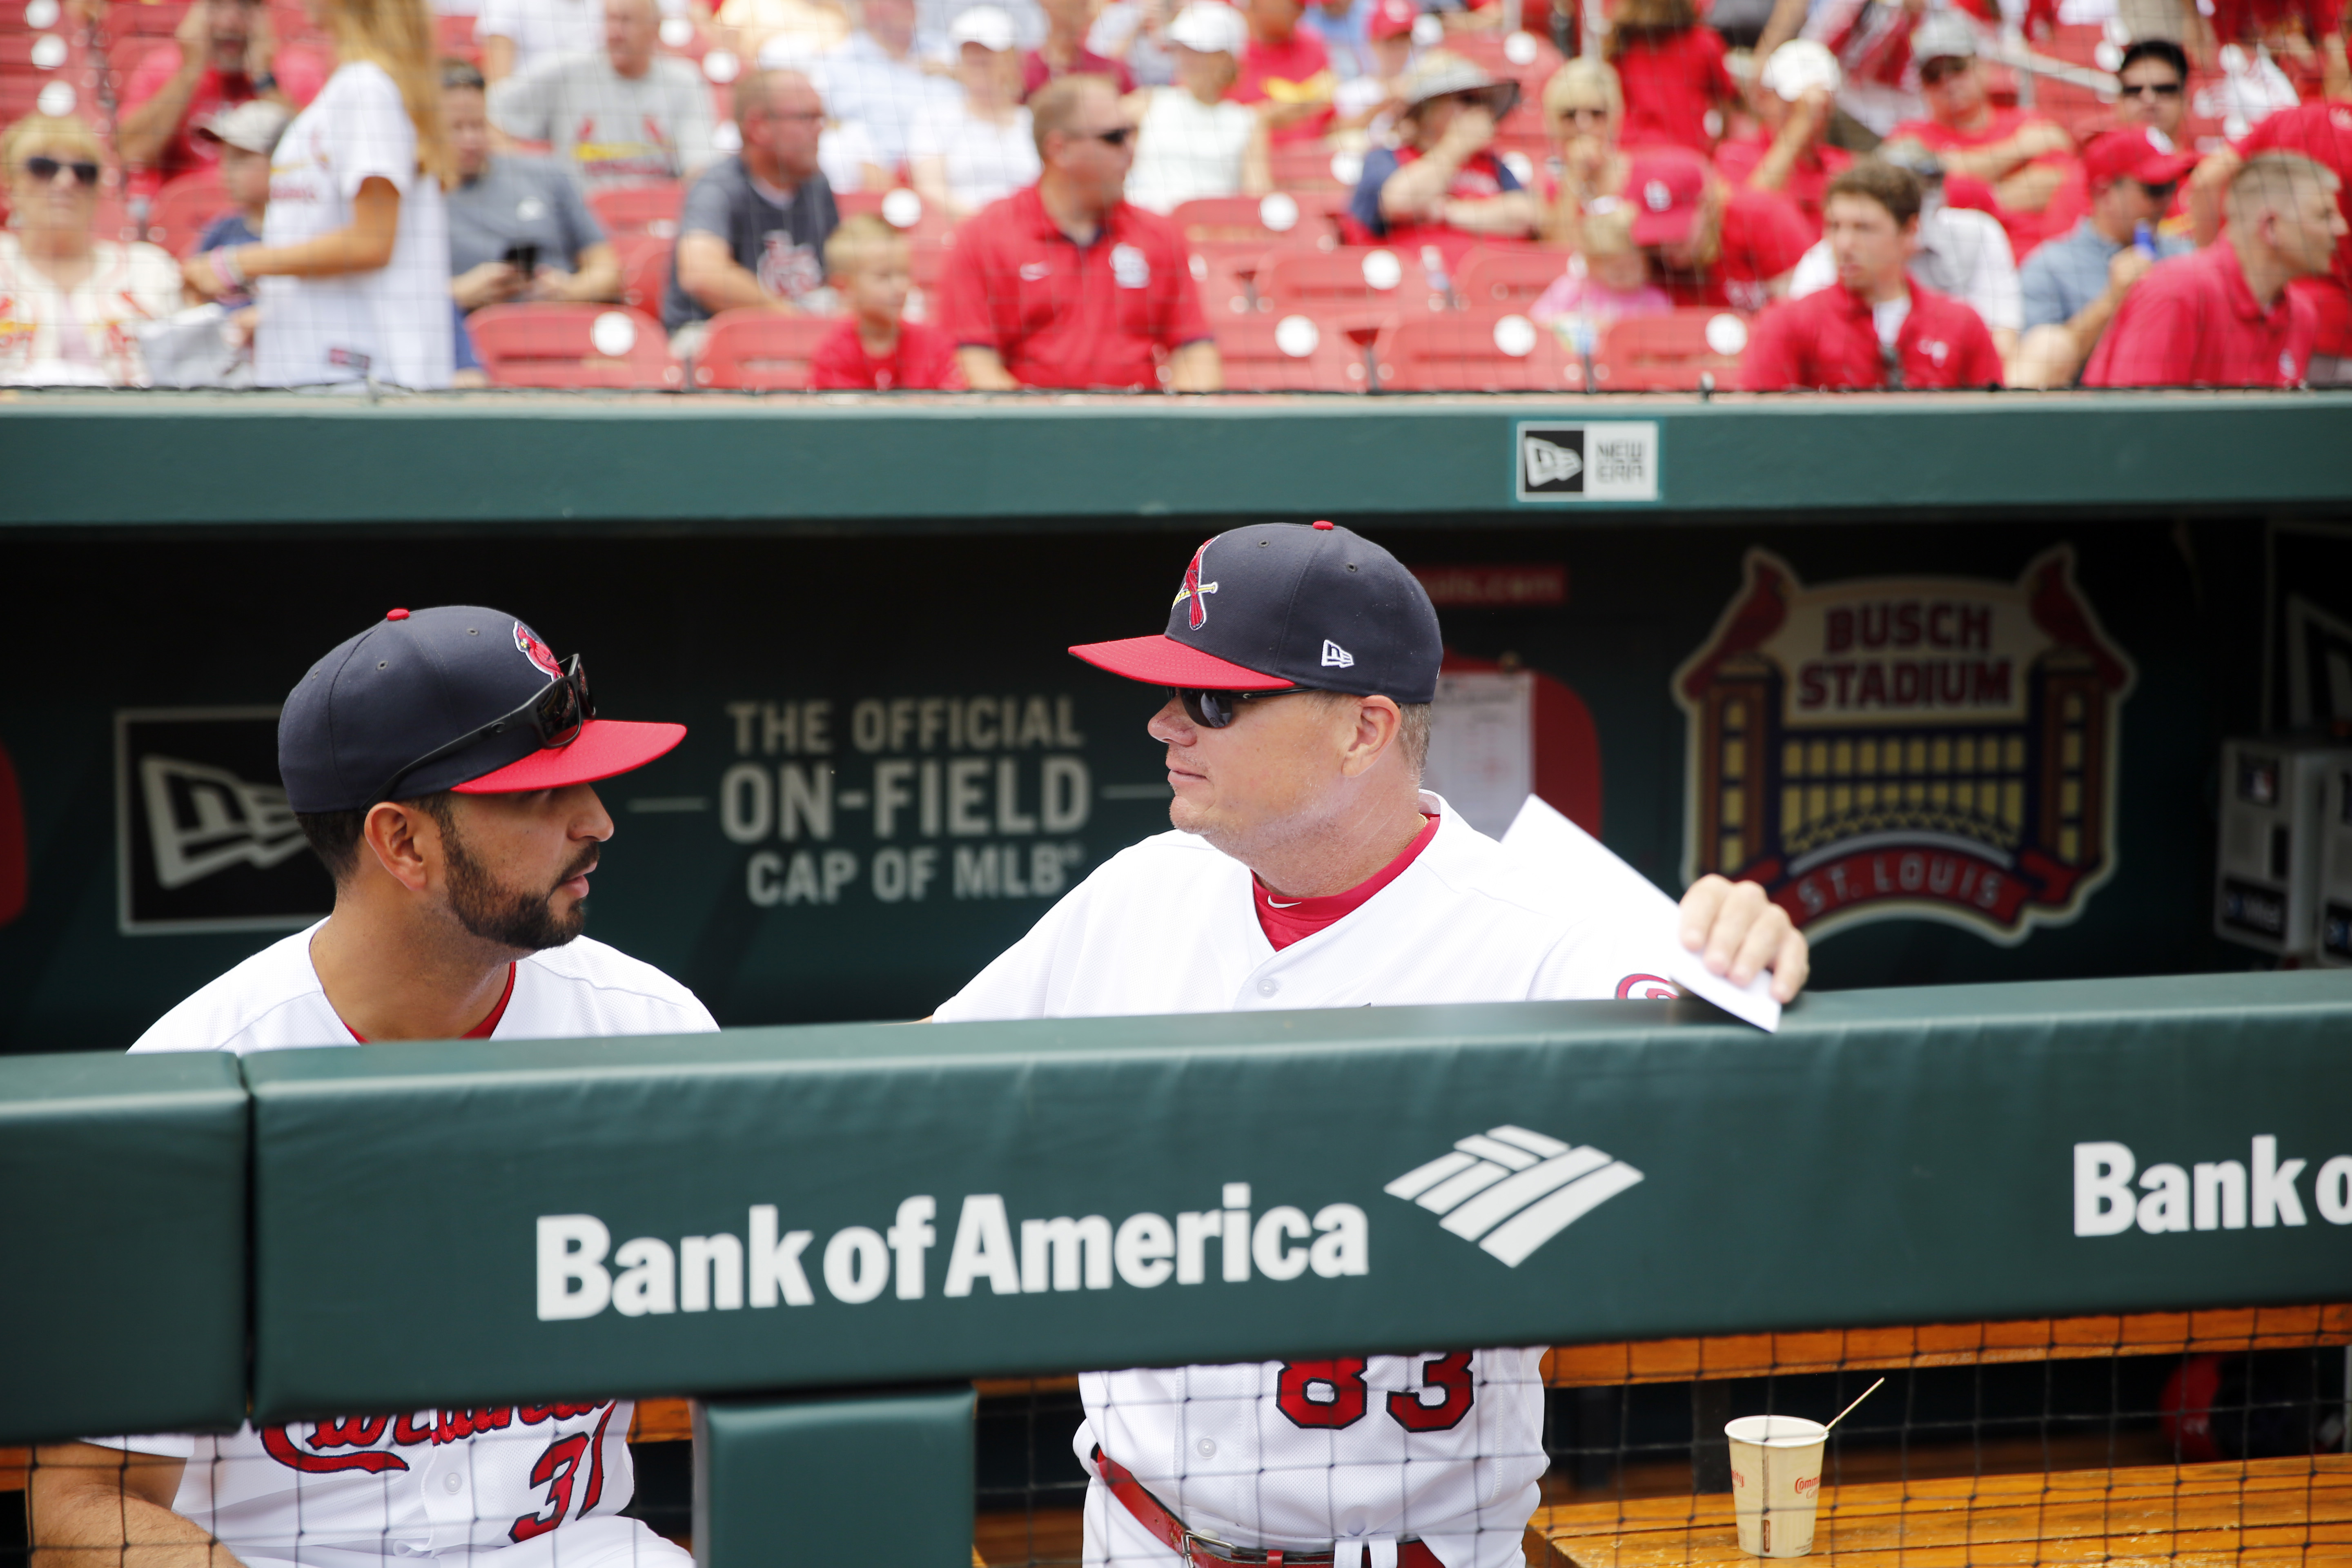 The Cardinals will promote bench coach Oliver Marmol (left) to replace fired manager Mike Shildt.